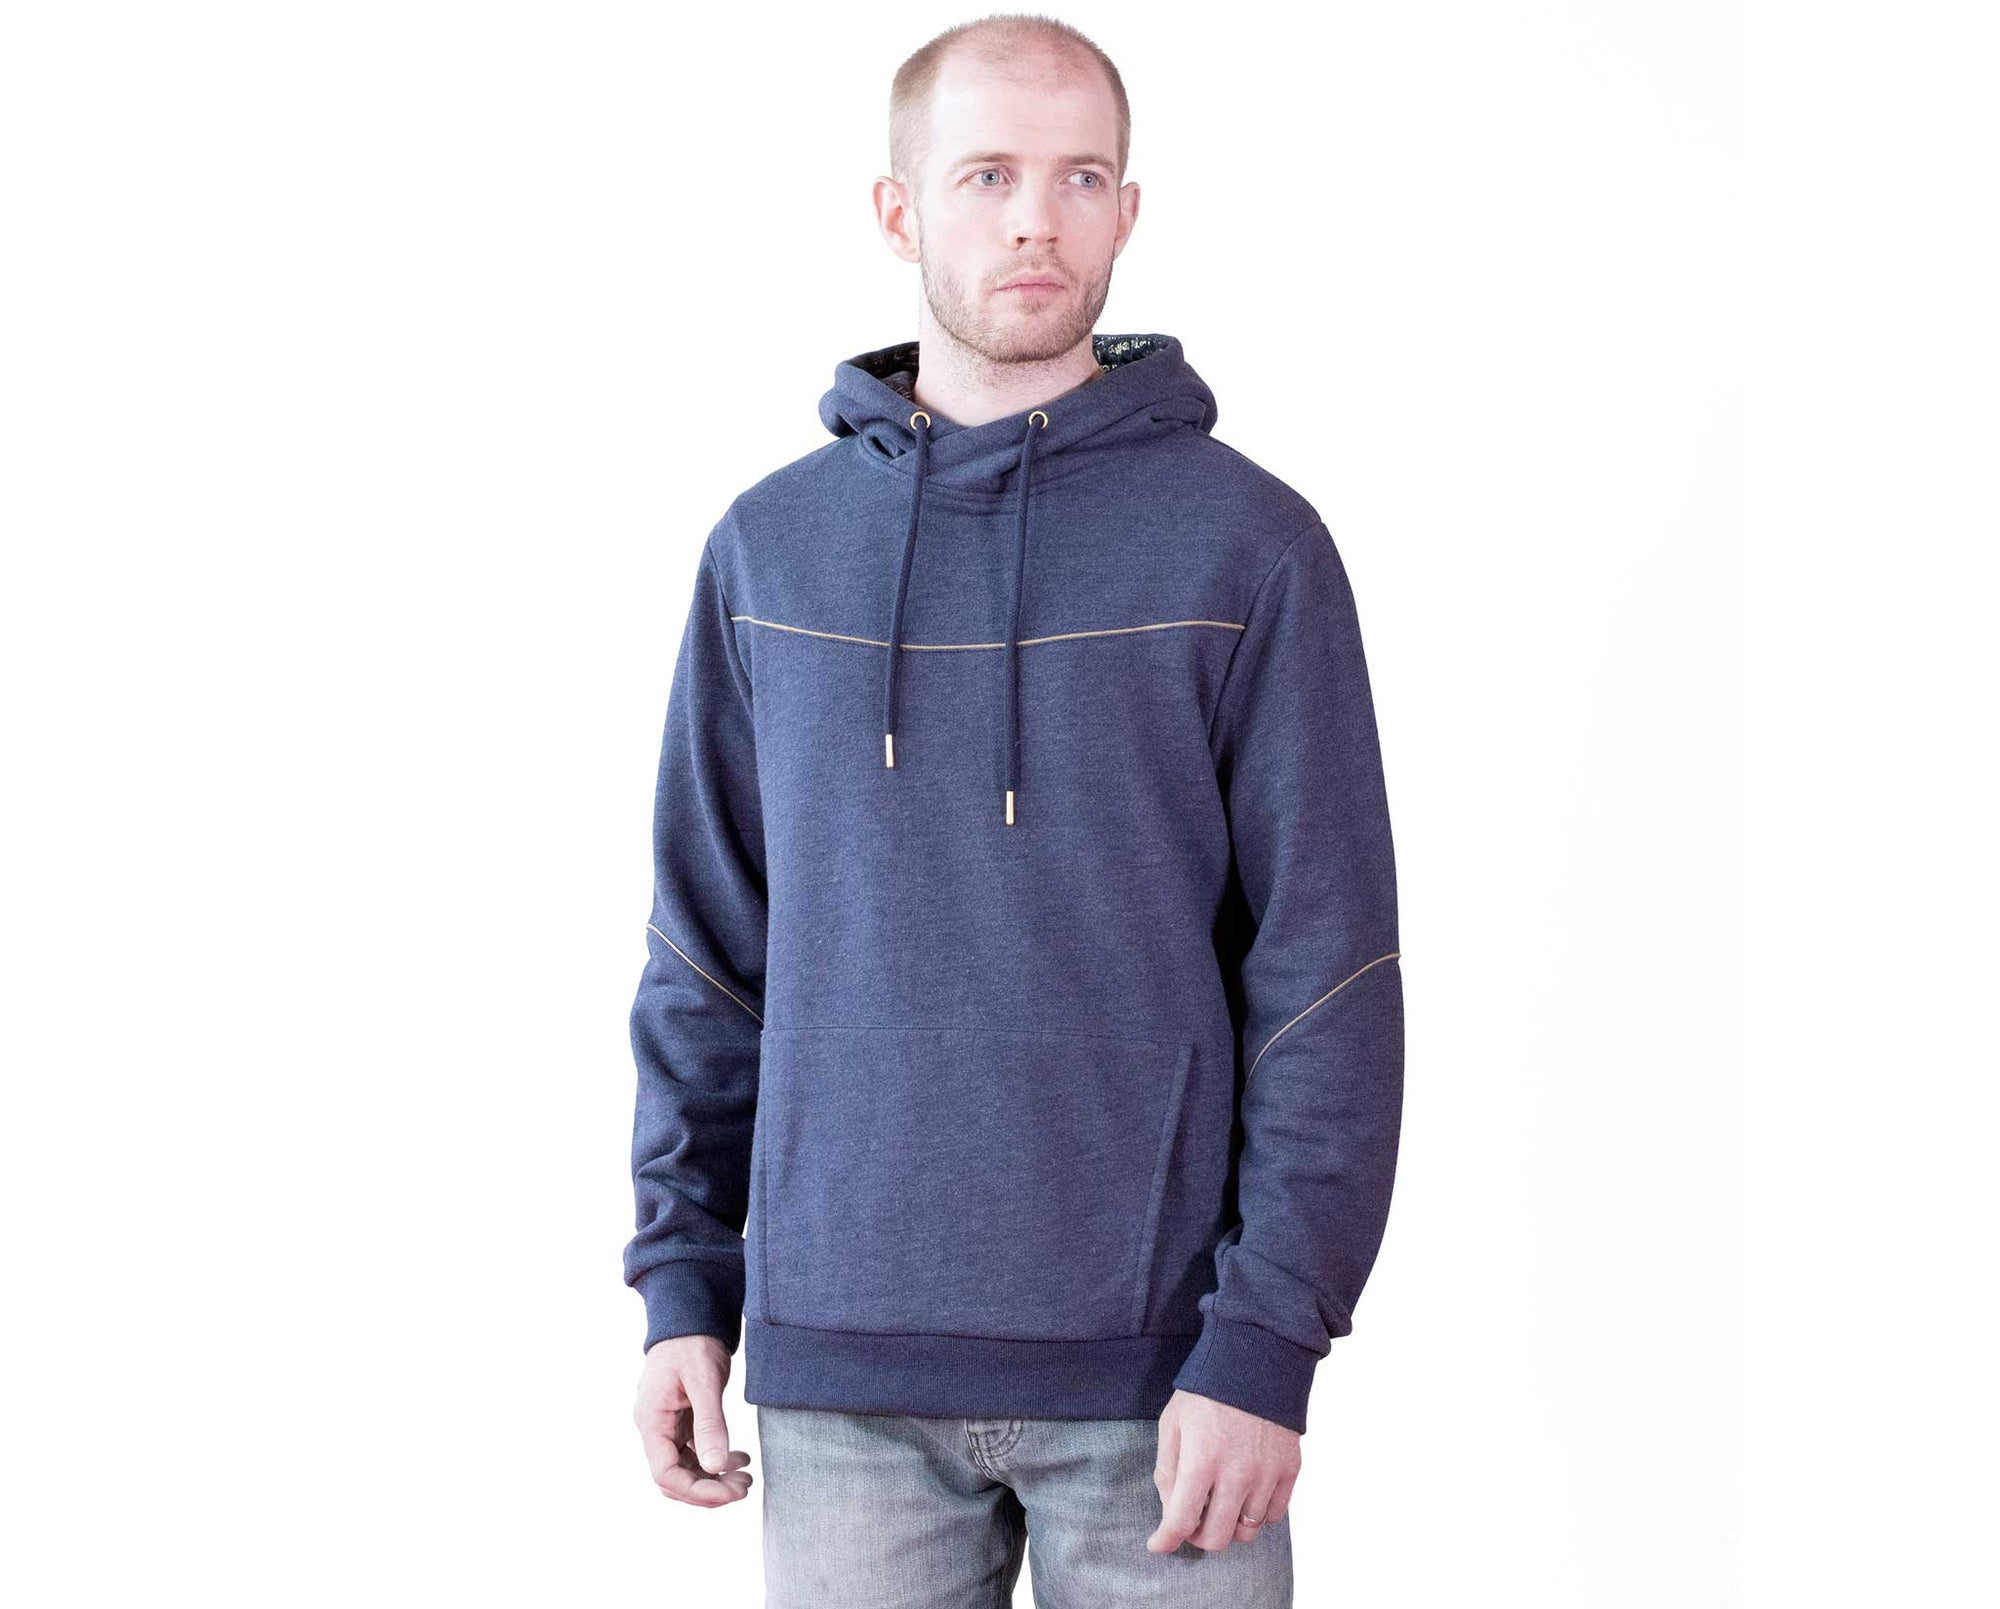 Medjay Sweater / Cowl Neck Hoodie Navy - Assassin's Creed Origins